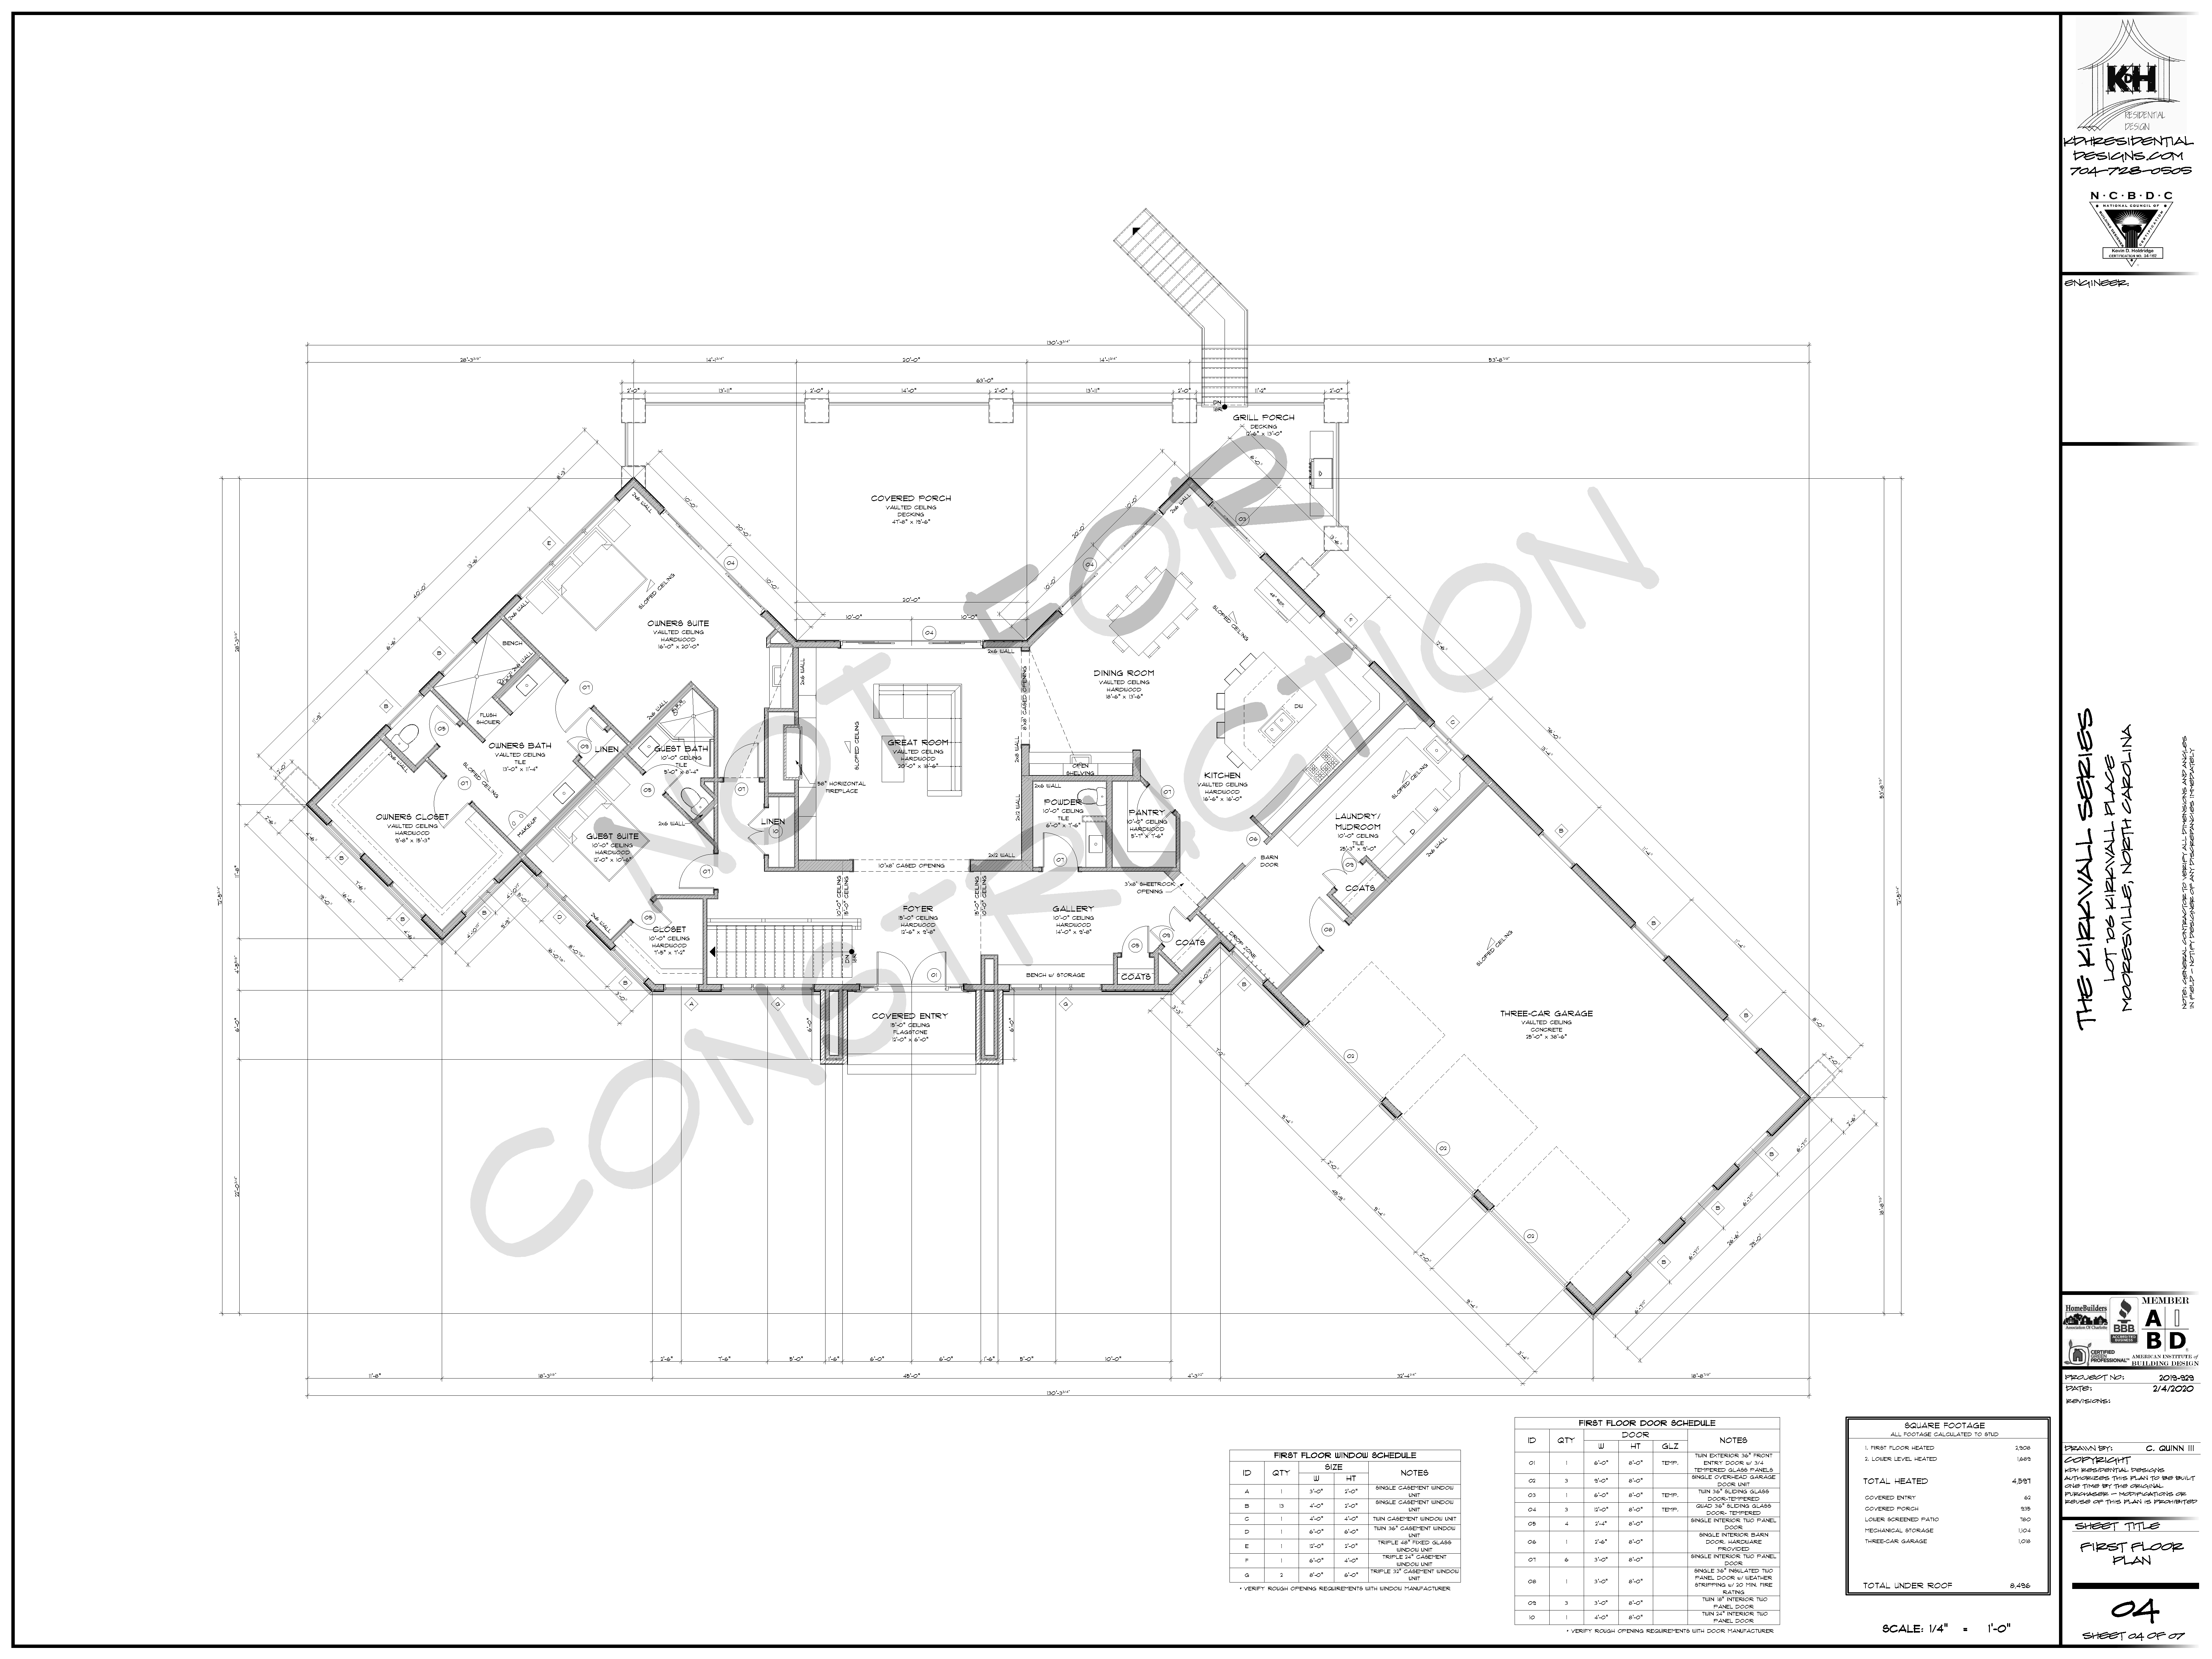 Proposed Floor Plan (Main Level)